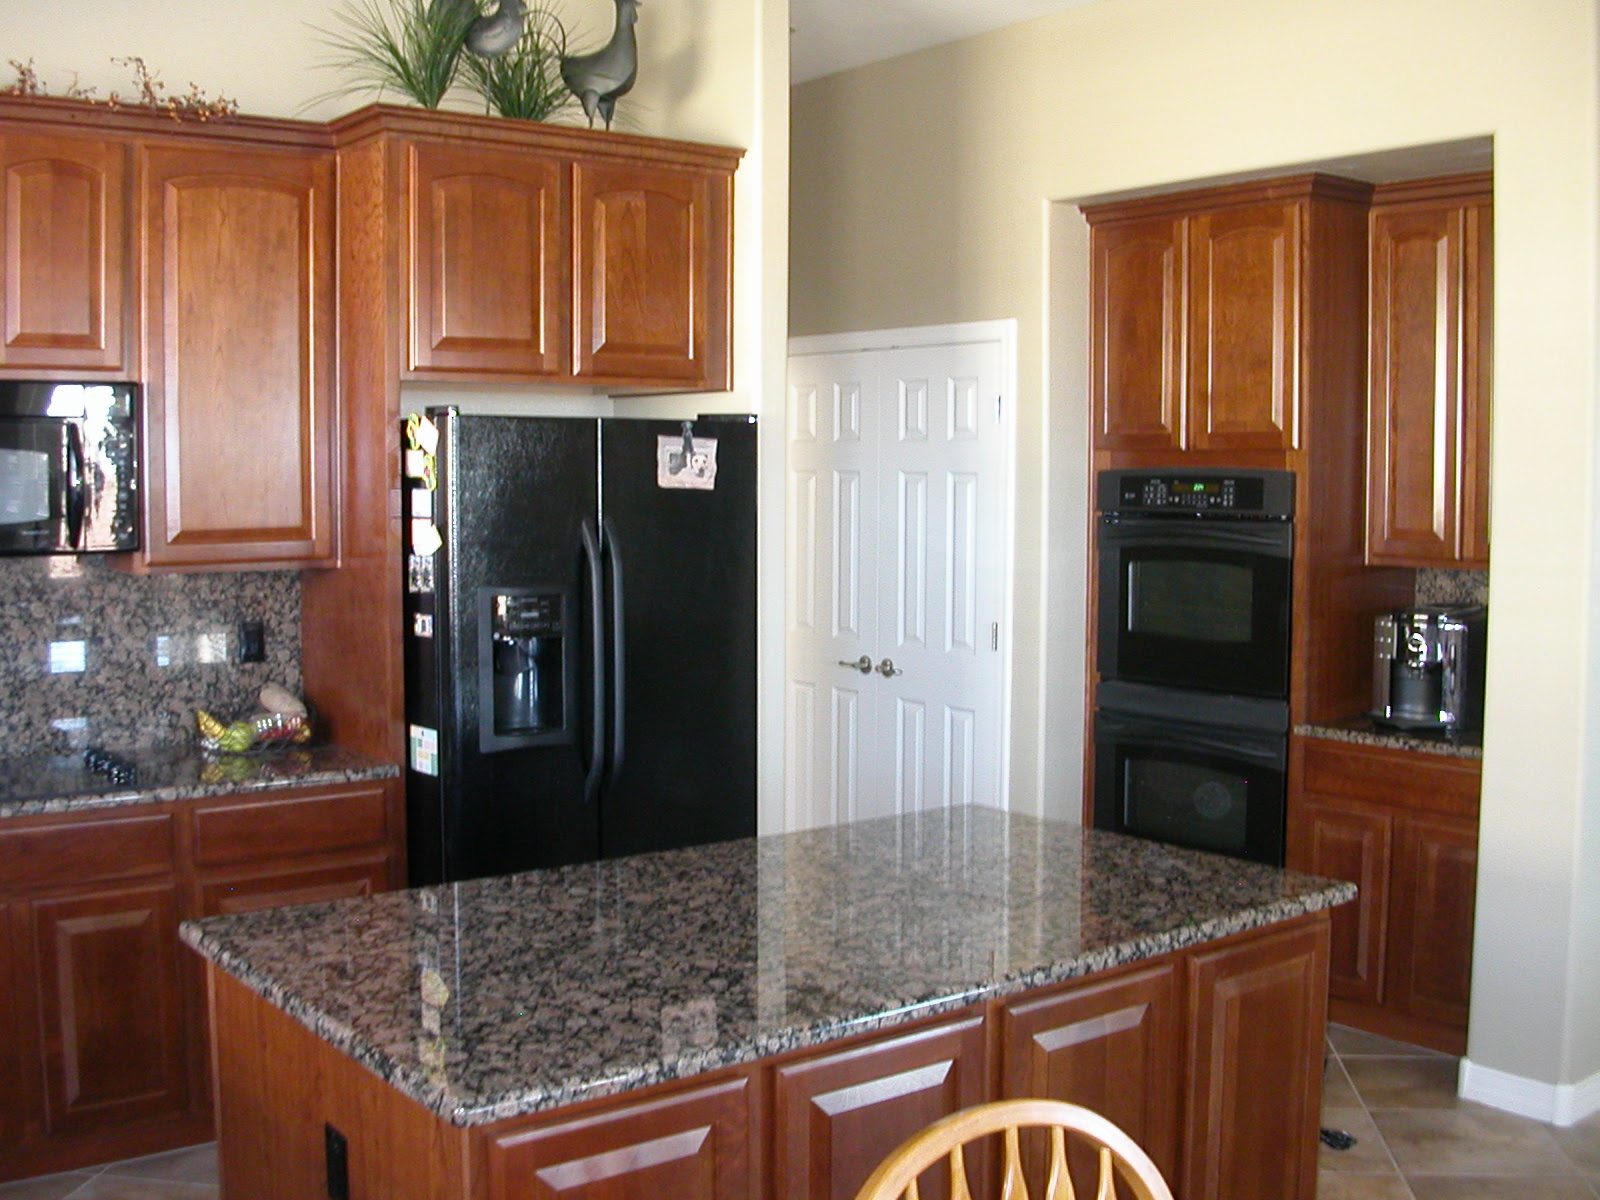 Kitchen with Black Appliances and Stainless Steel